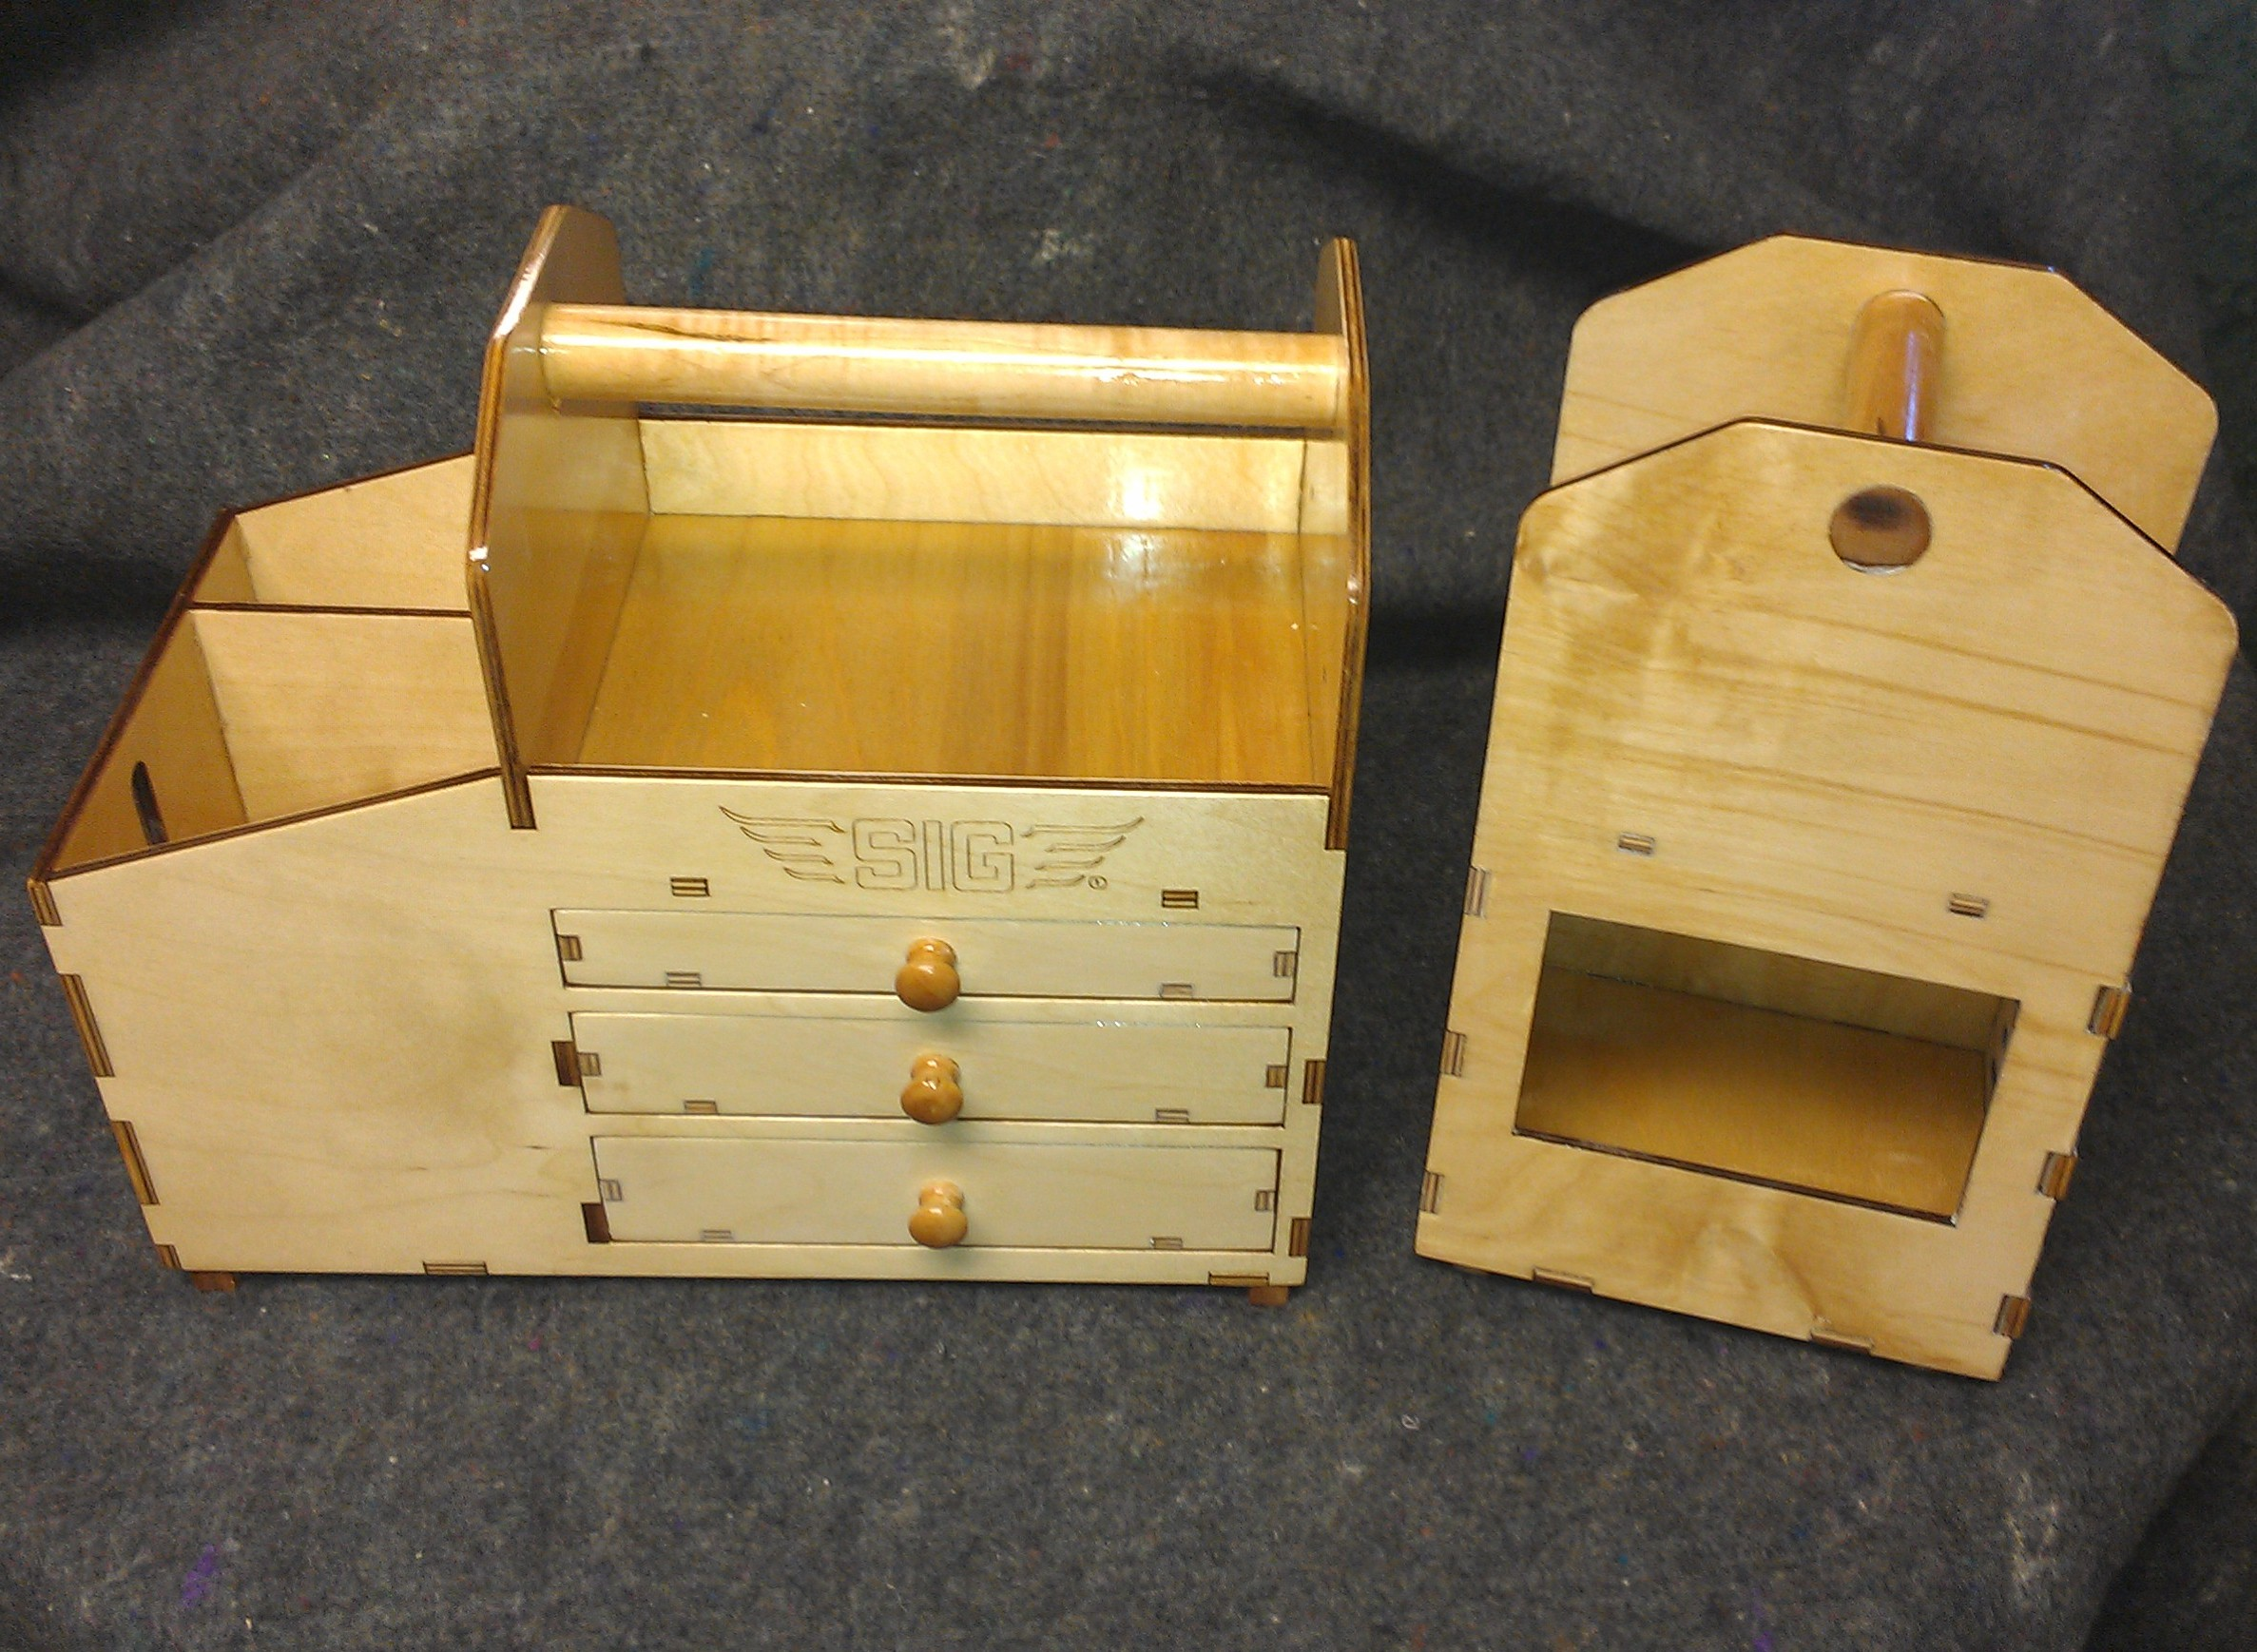 Afternoon project: Build a Flight Box - Model Airplane News